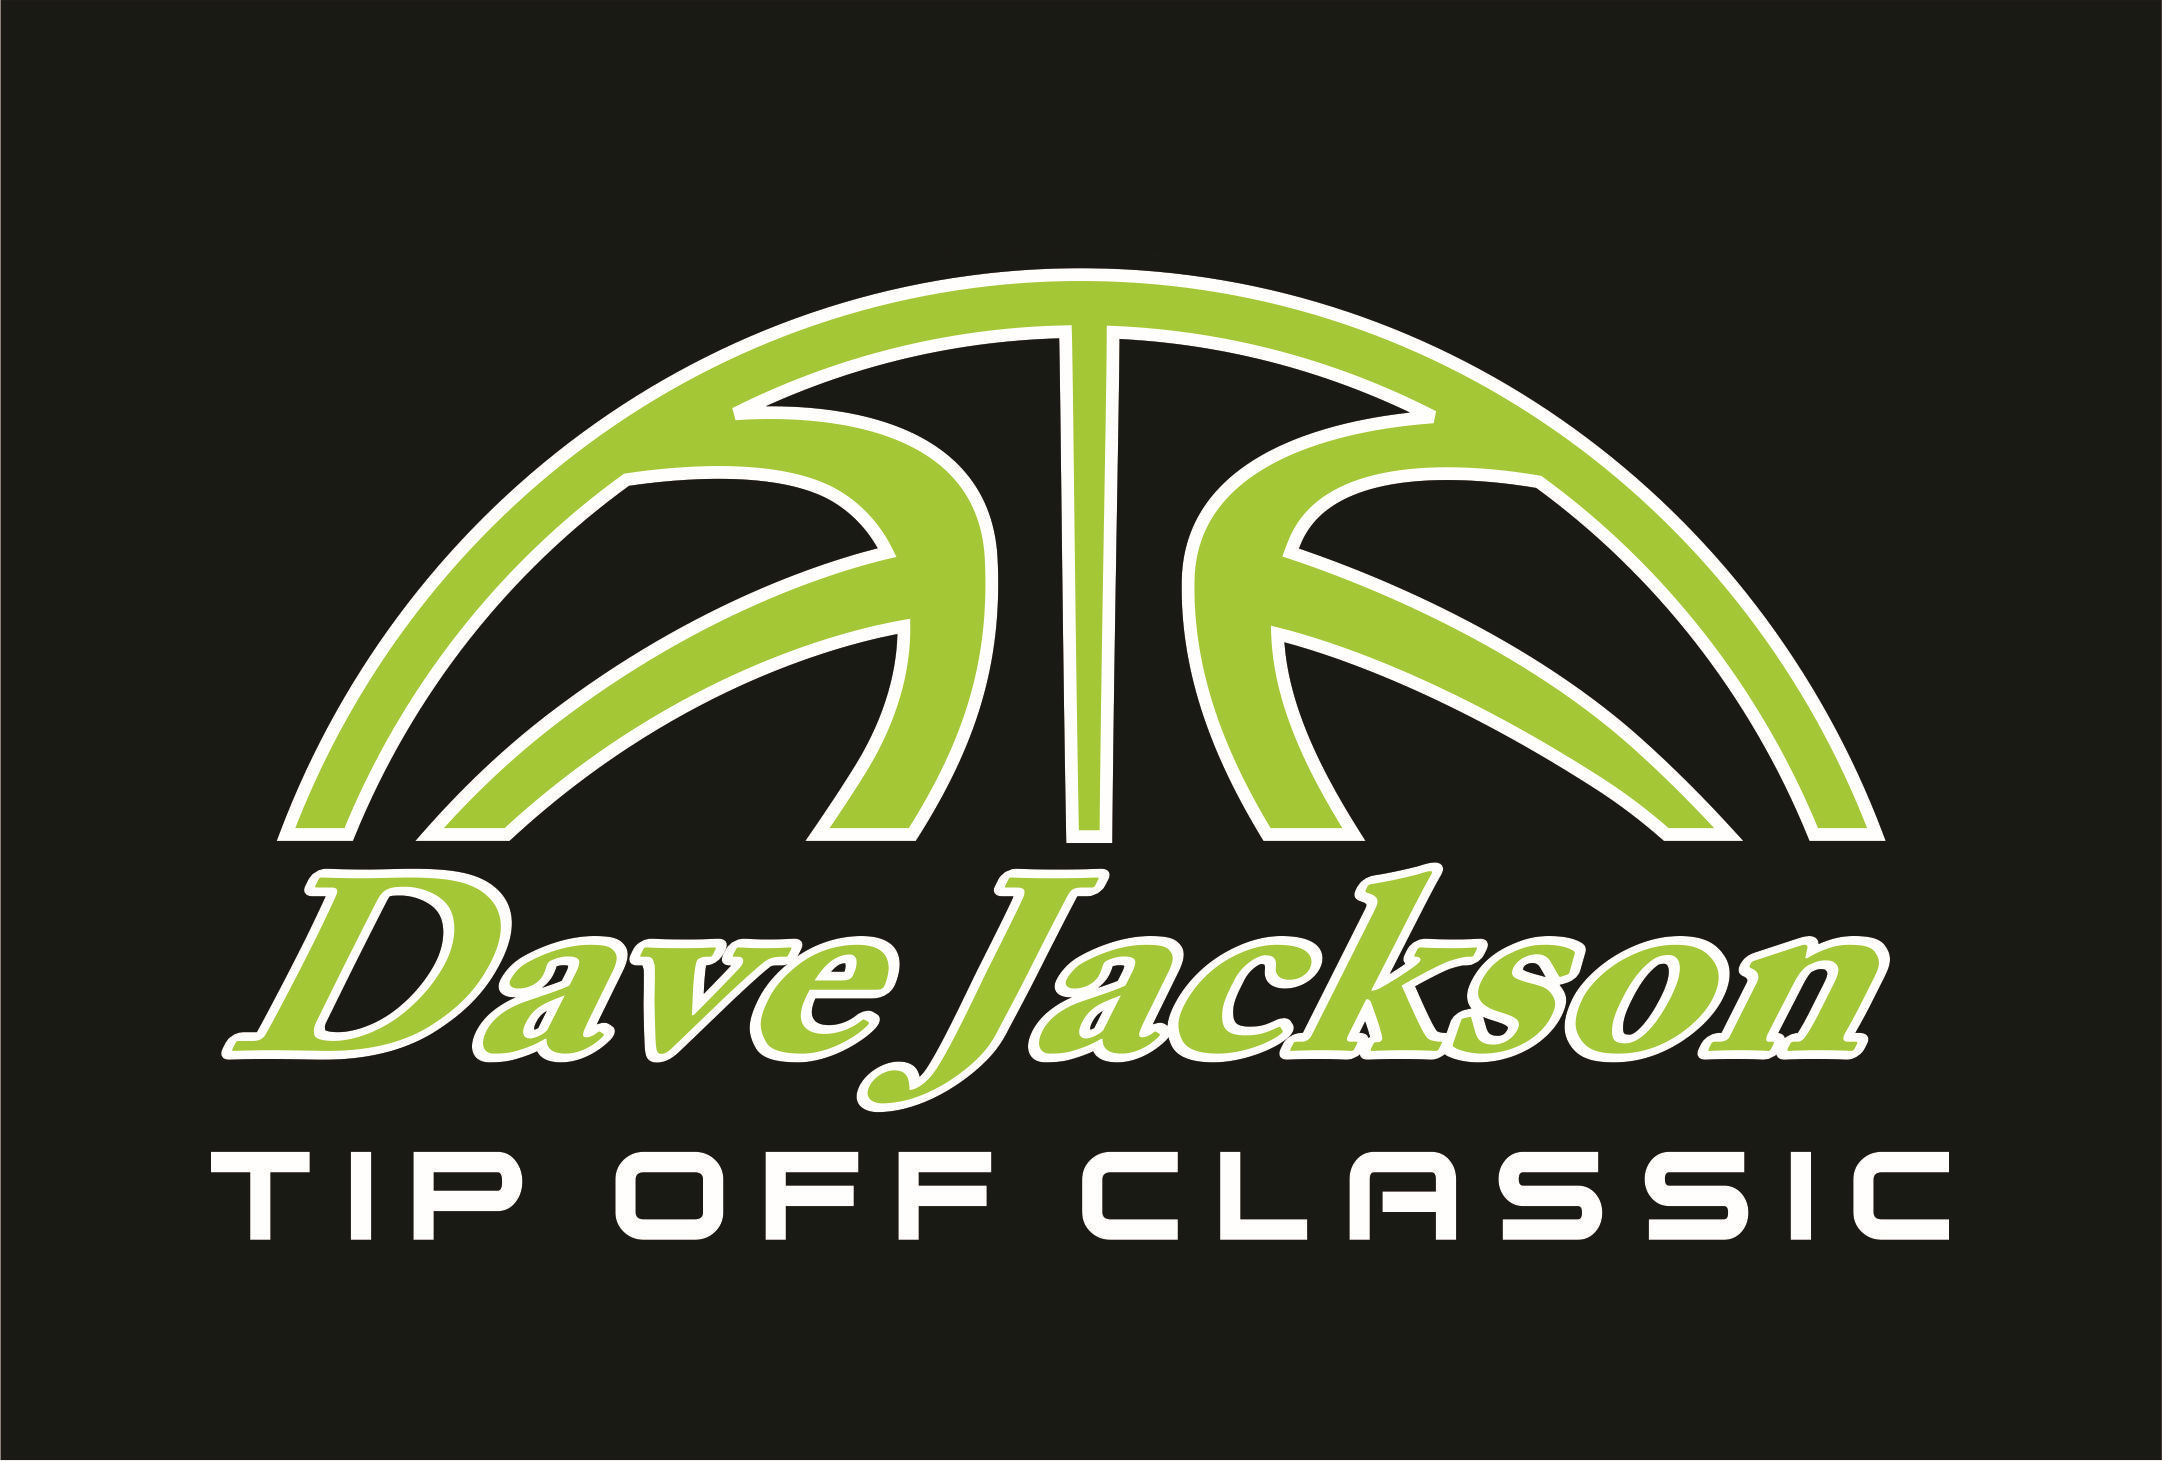 Dave Jackson Tip Off Classic